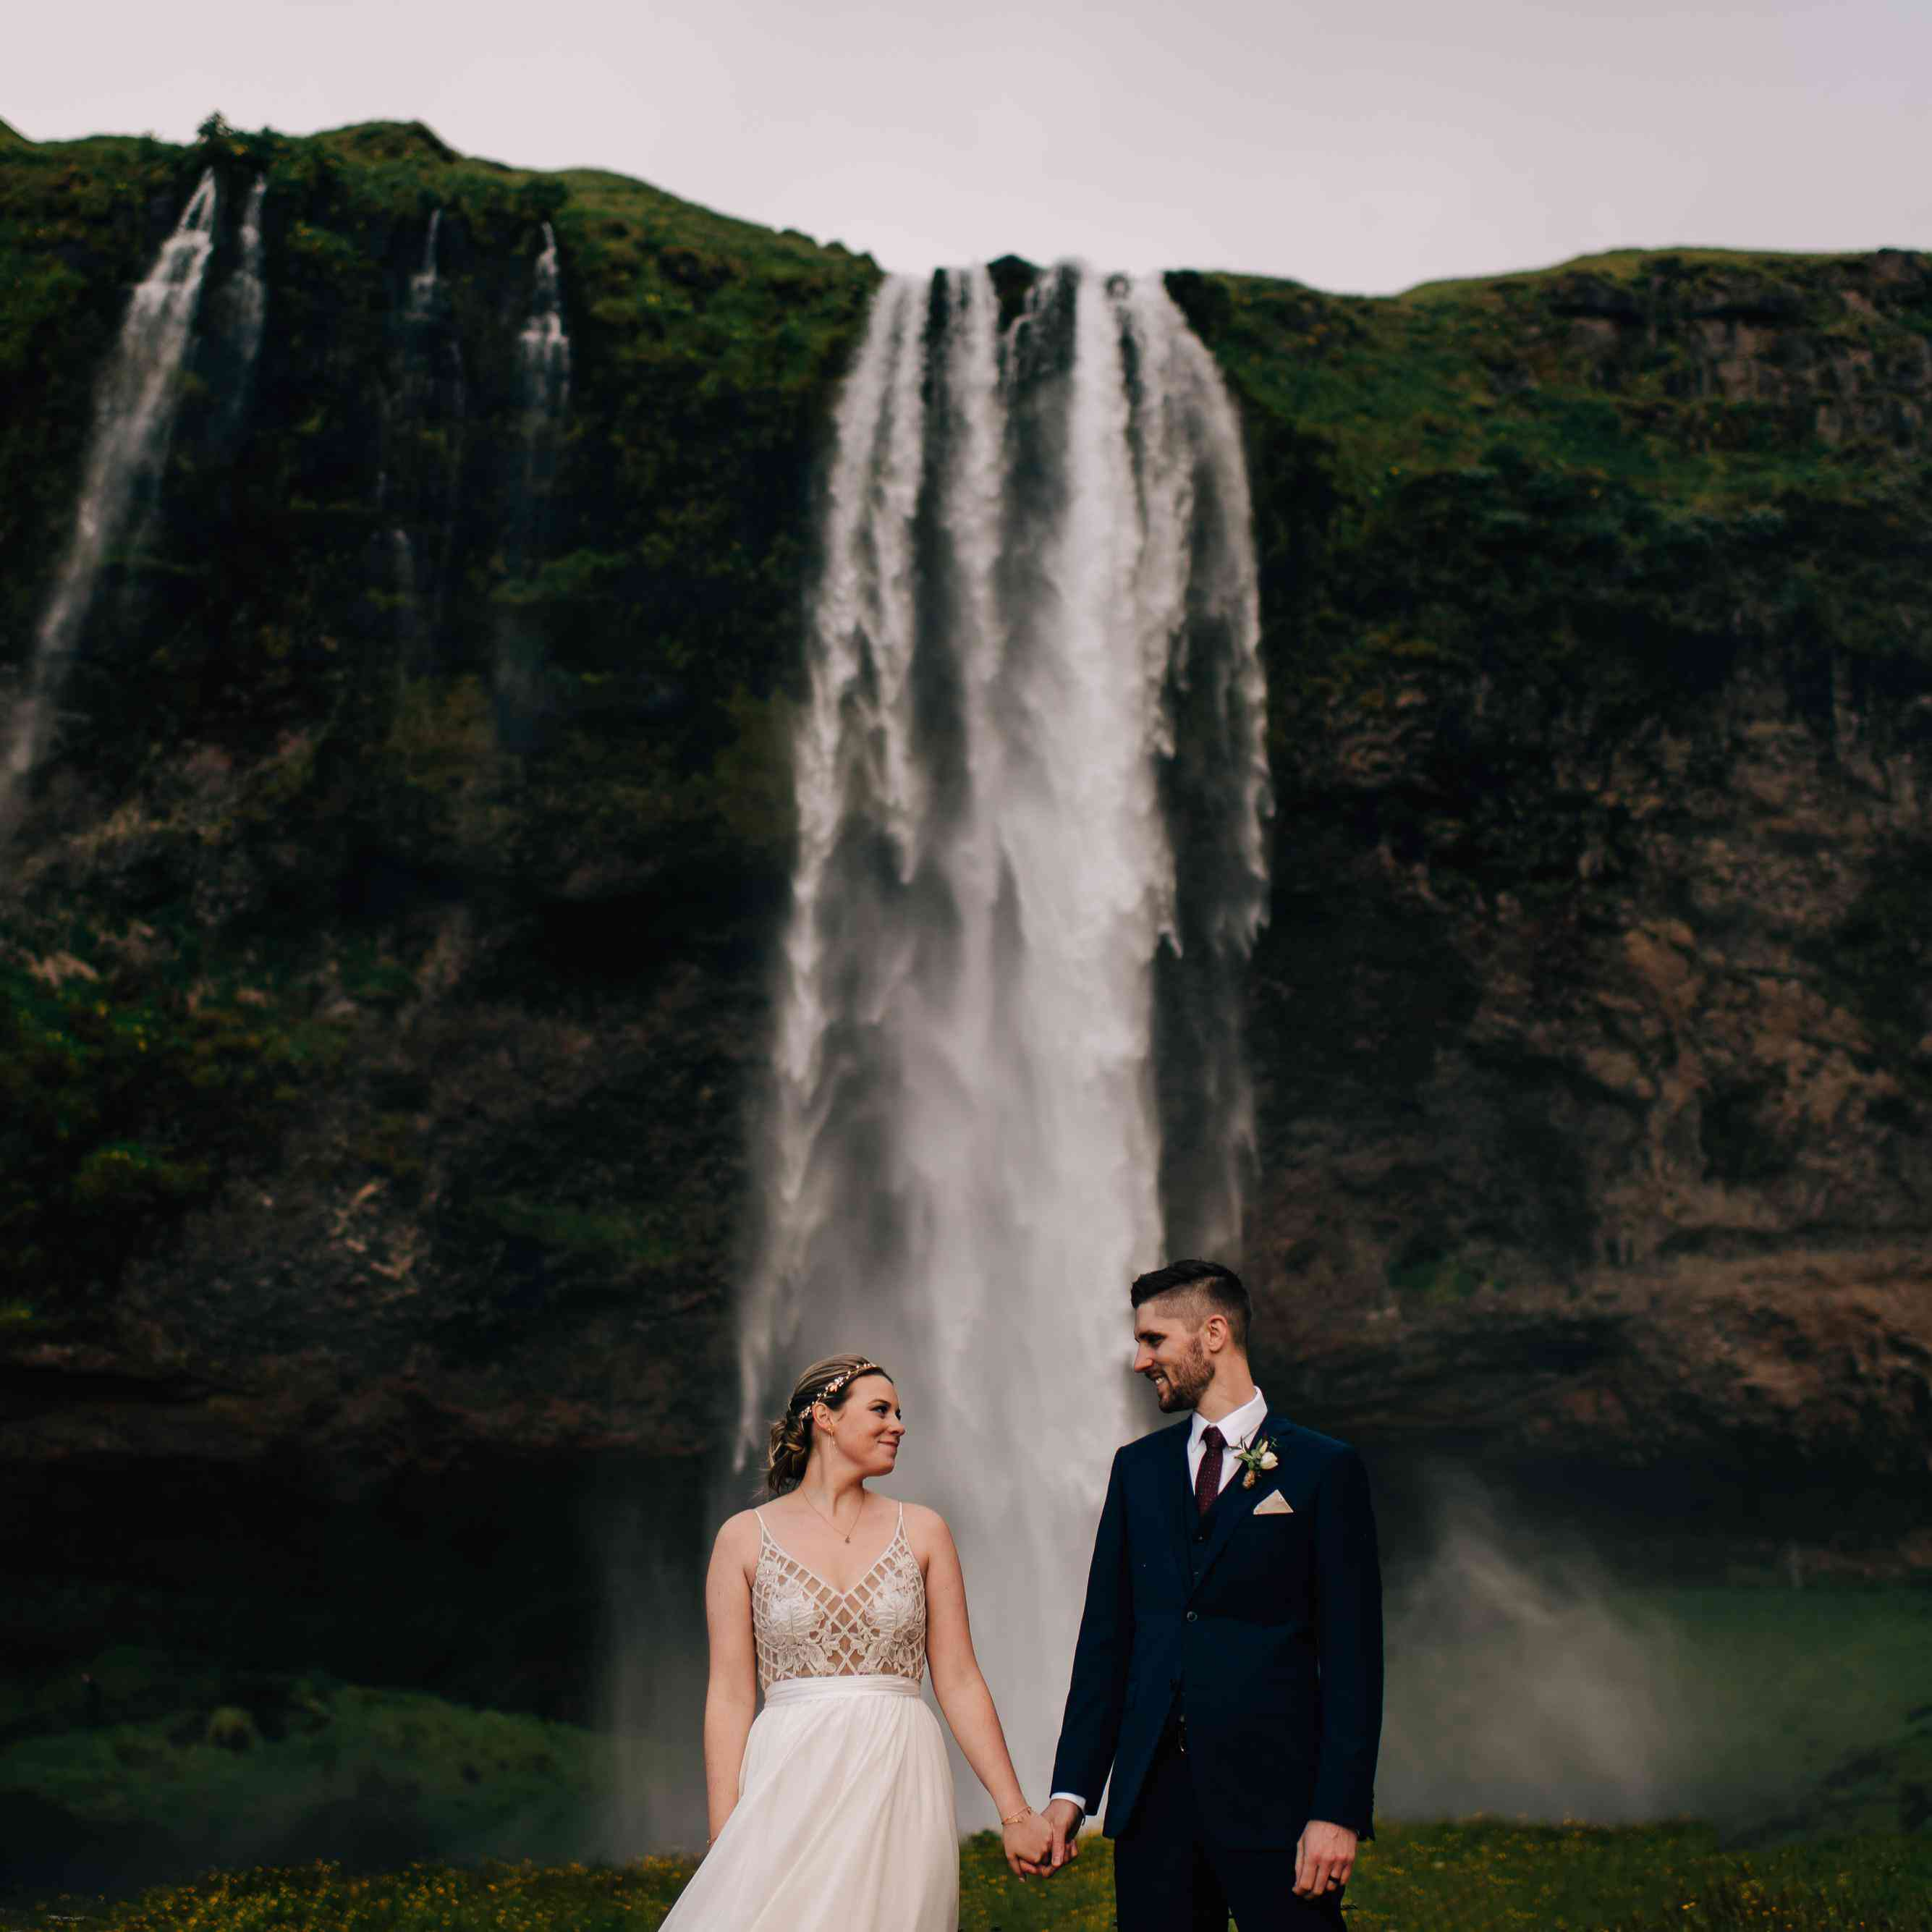 Destination Wedding Etiquette Gifts: 25 Pictures To Convince You Of An Iceland Wedding